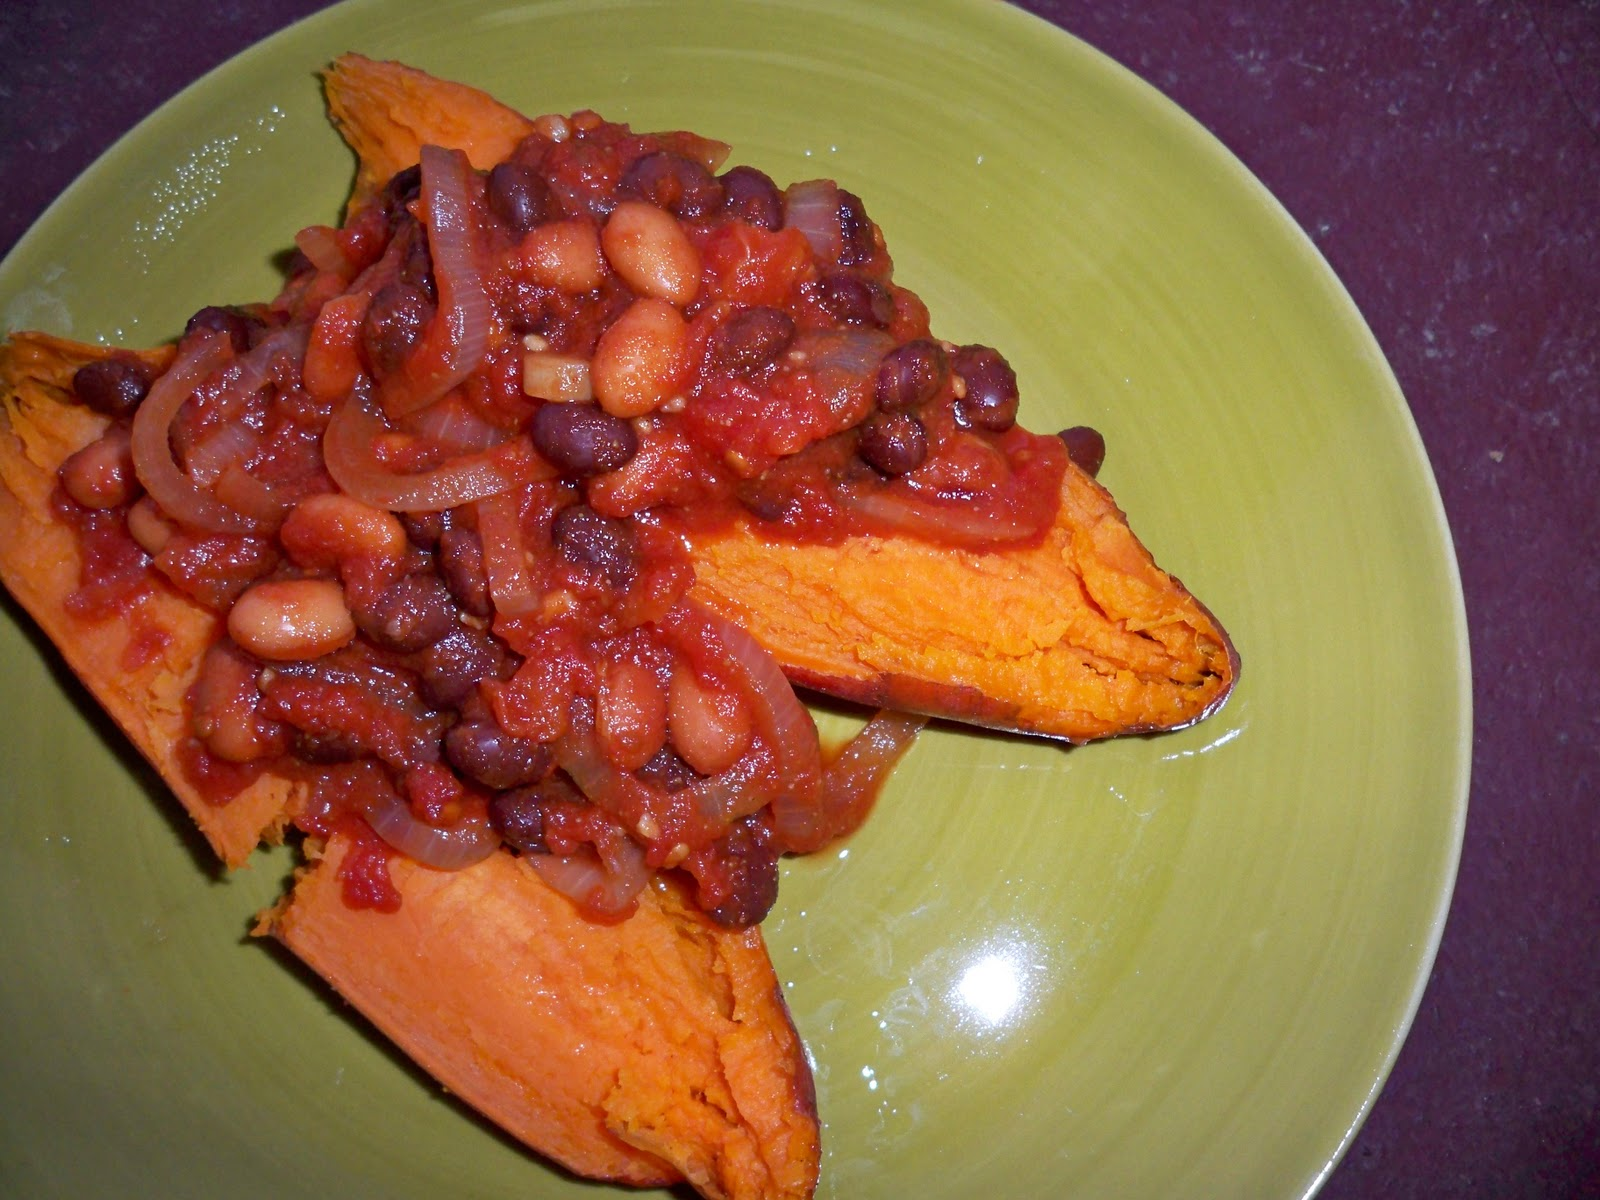 Food for Todd: Baked Sweet Potatoes with Chili Beans